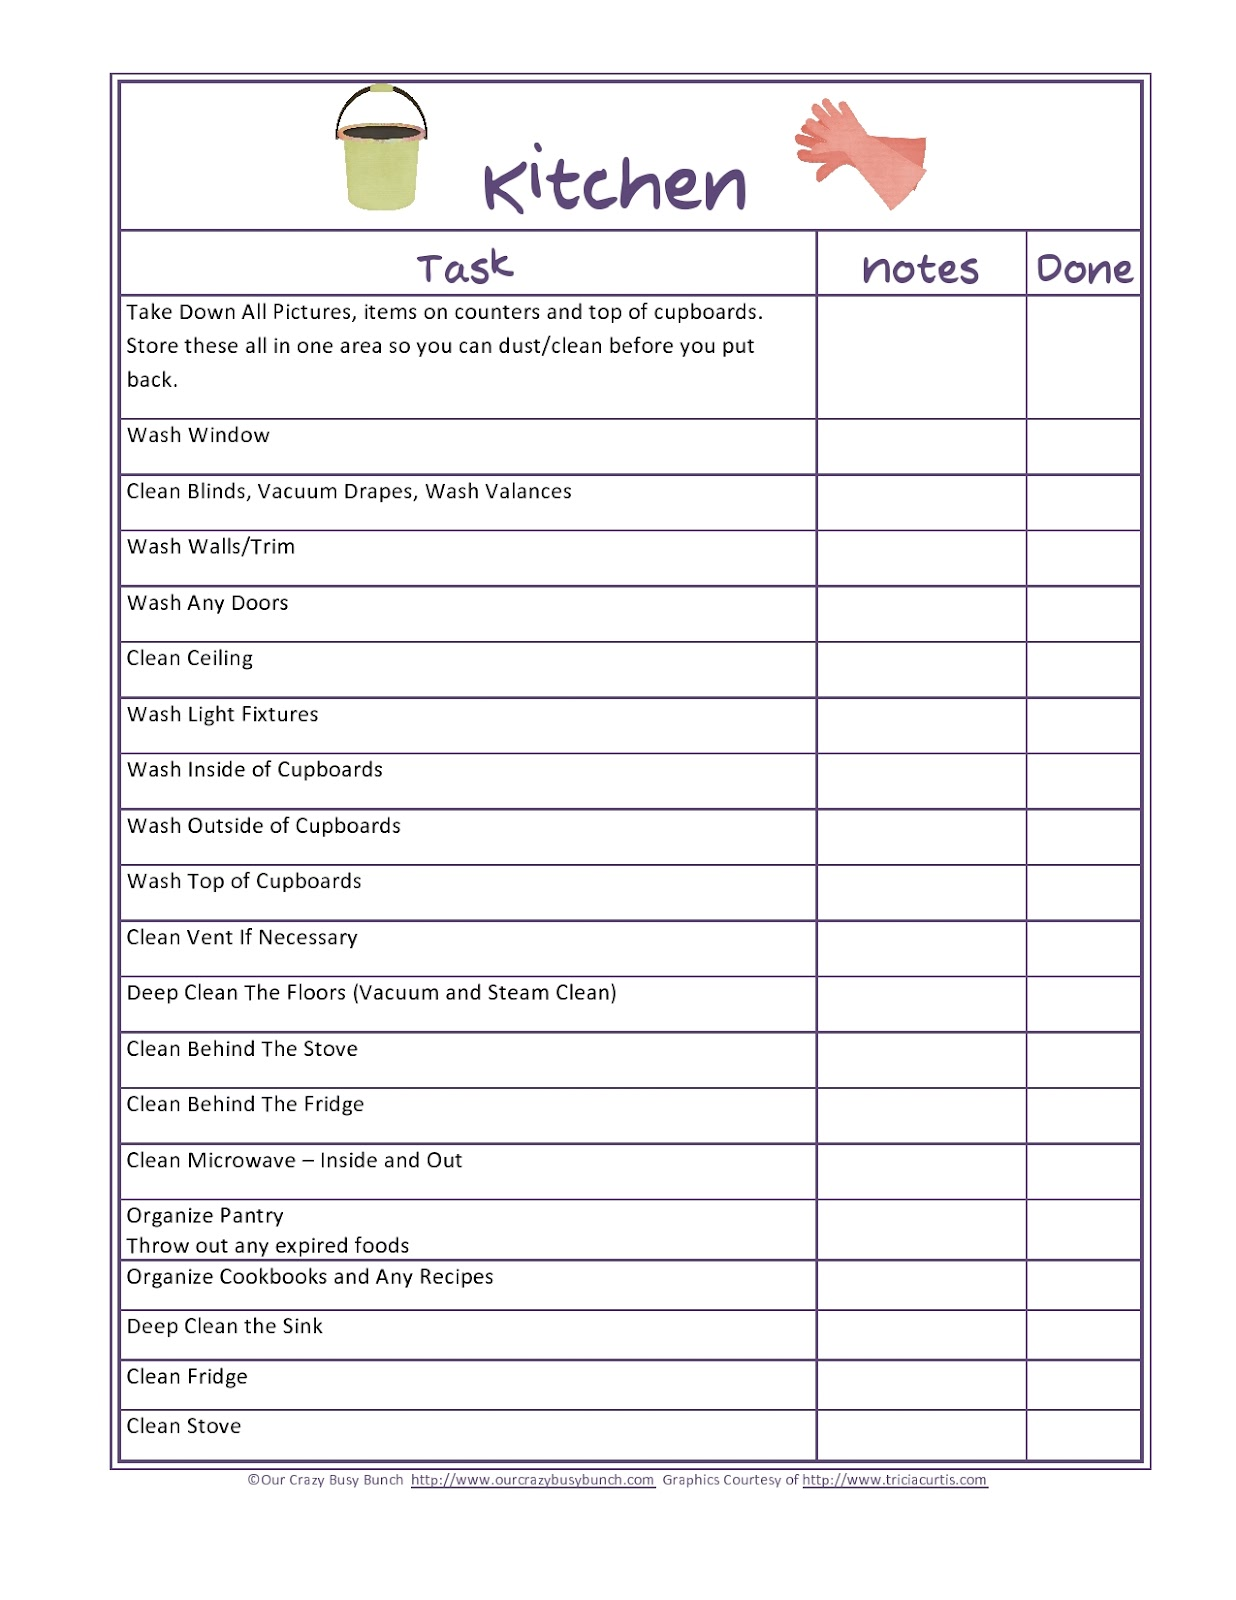 Printable kitchen safety worksheets just b cause for 5 kitchen safety hazards